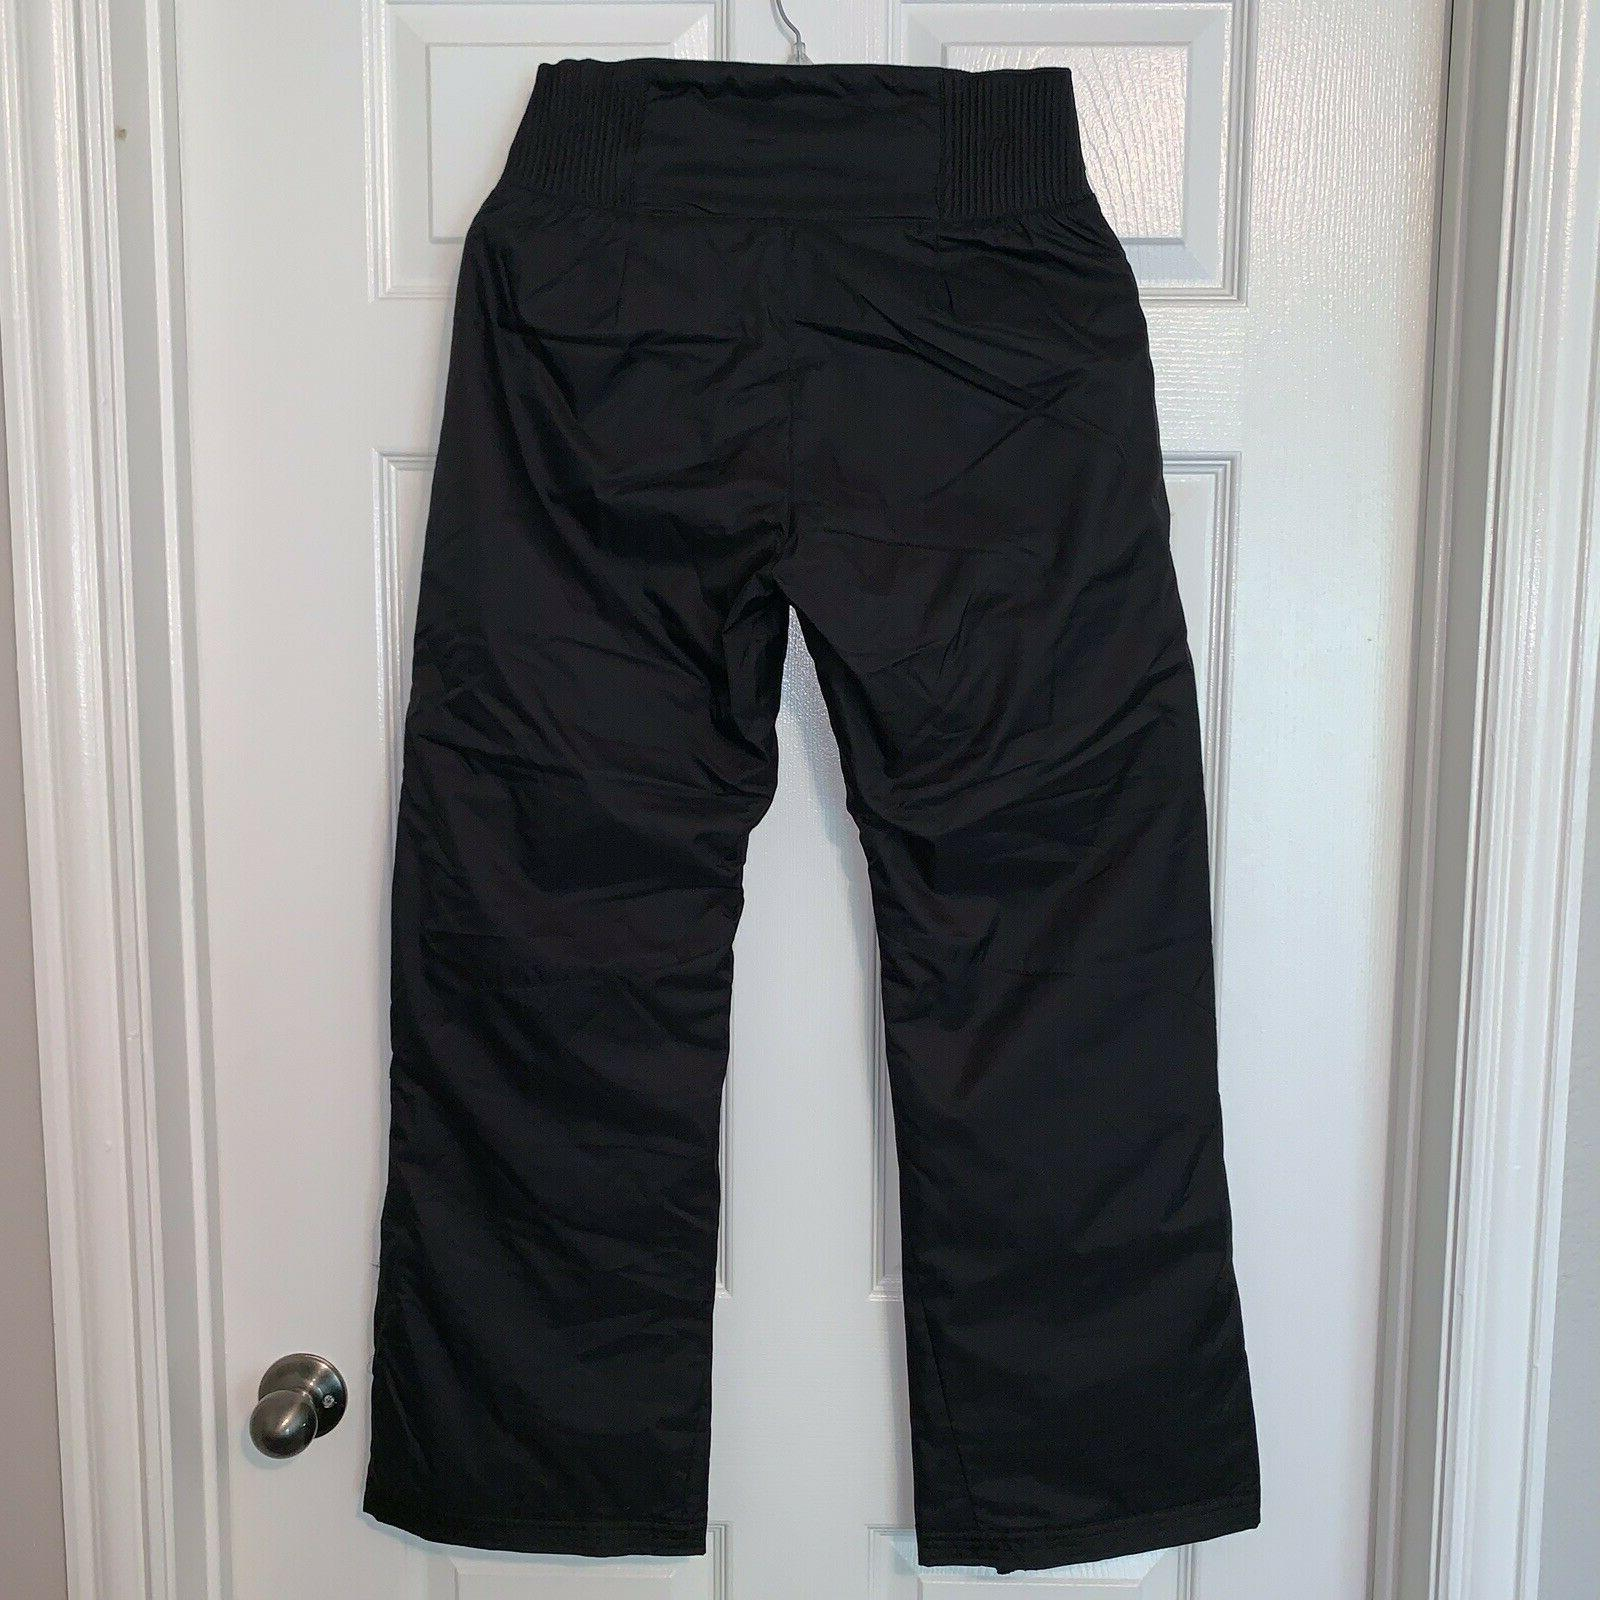 Polar Silver Womens Insulated Pants Snowboarding Black Sz S